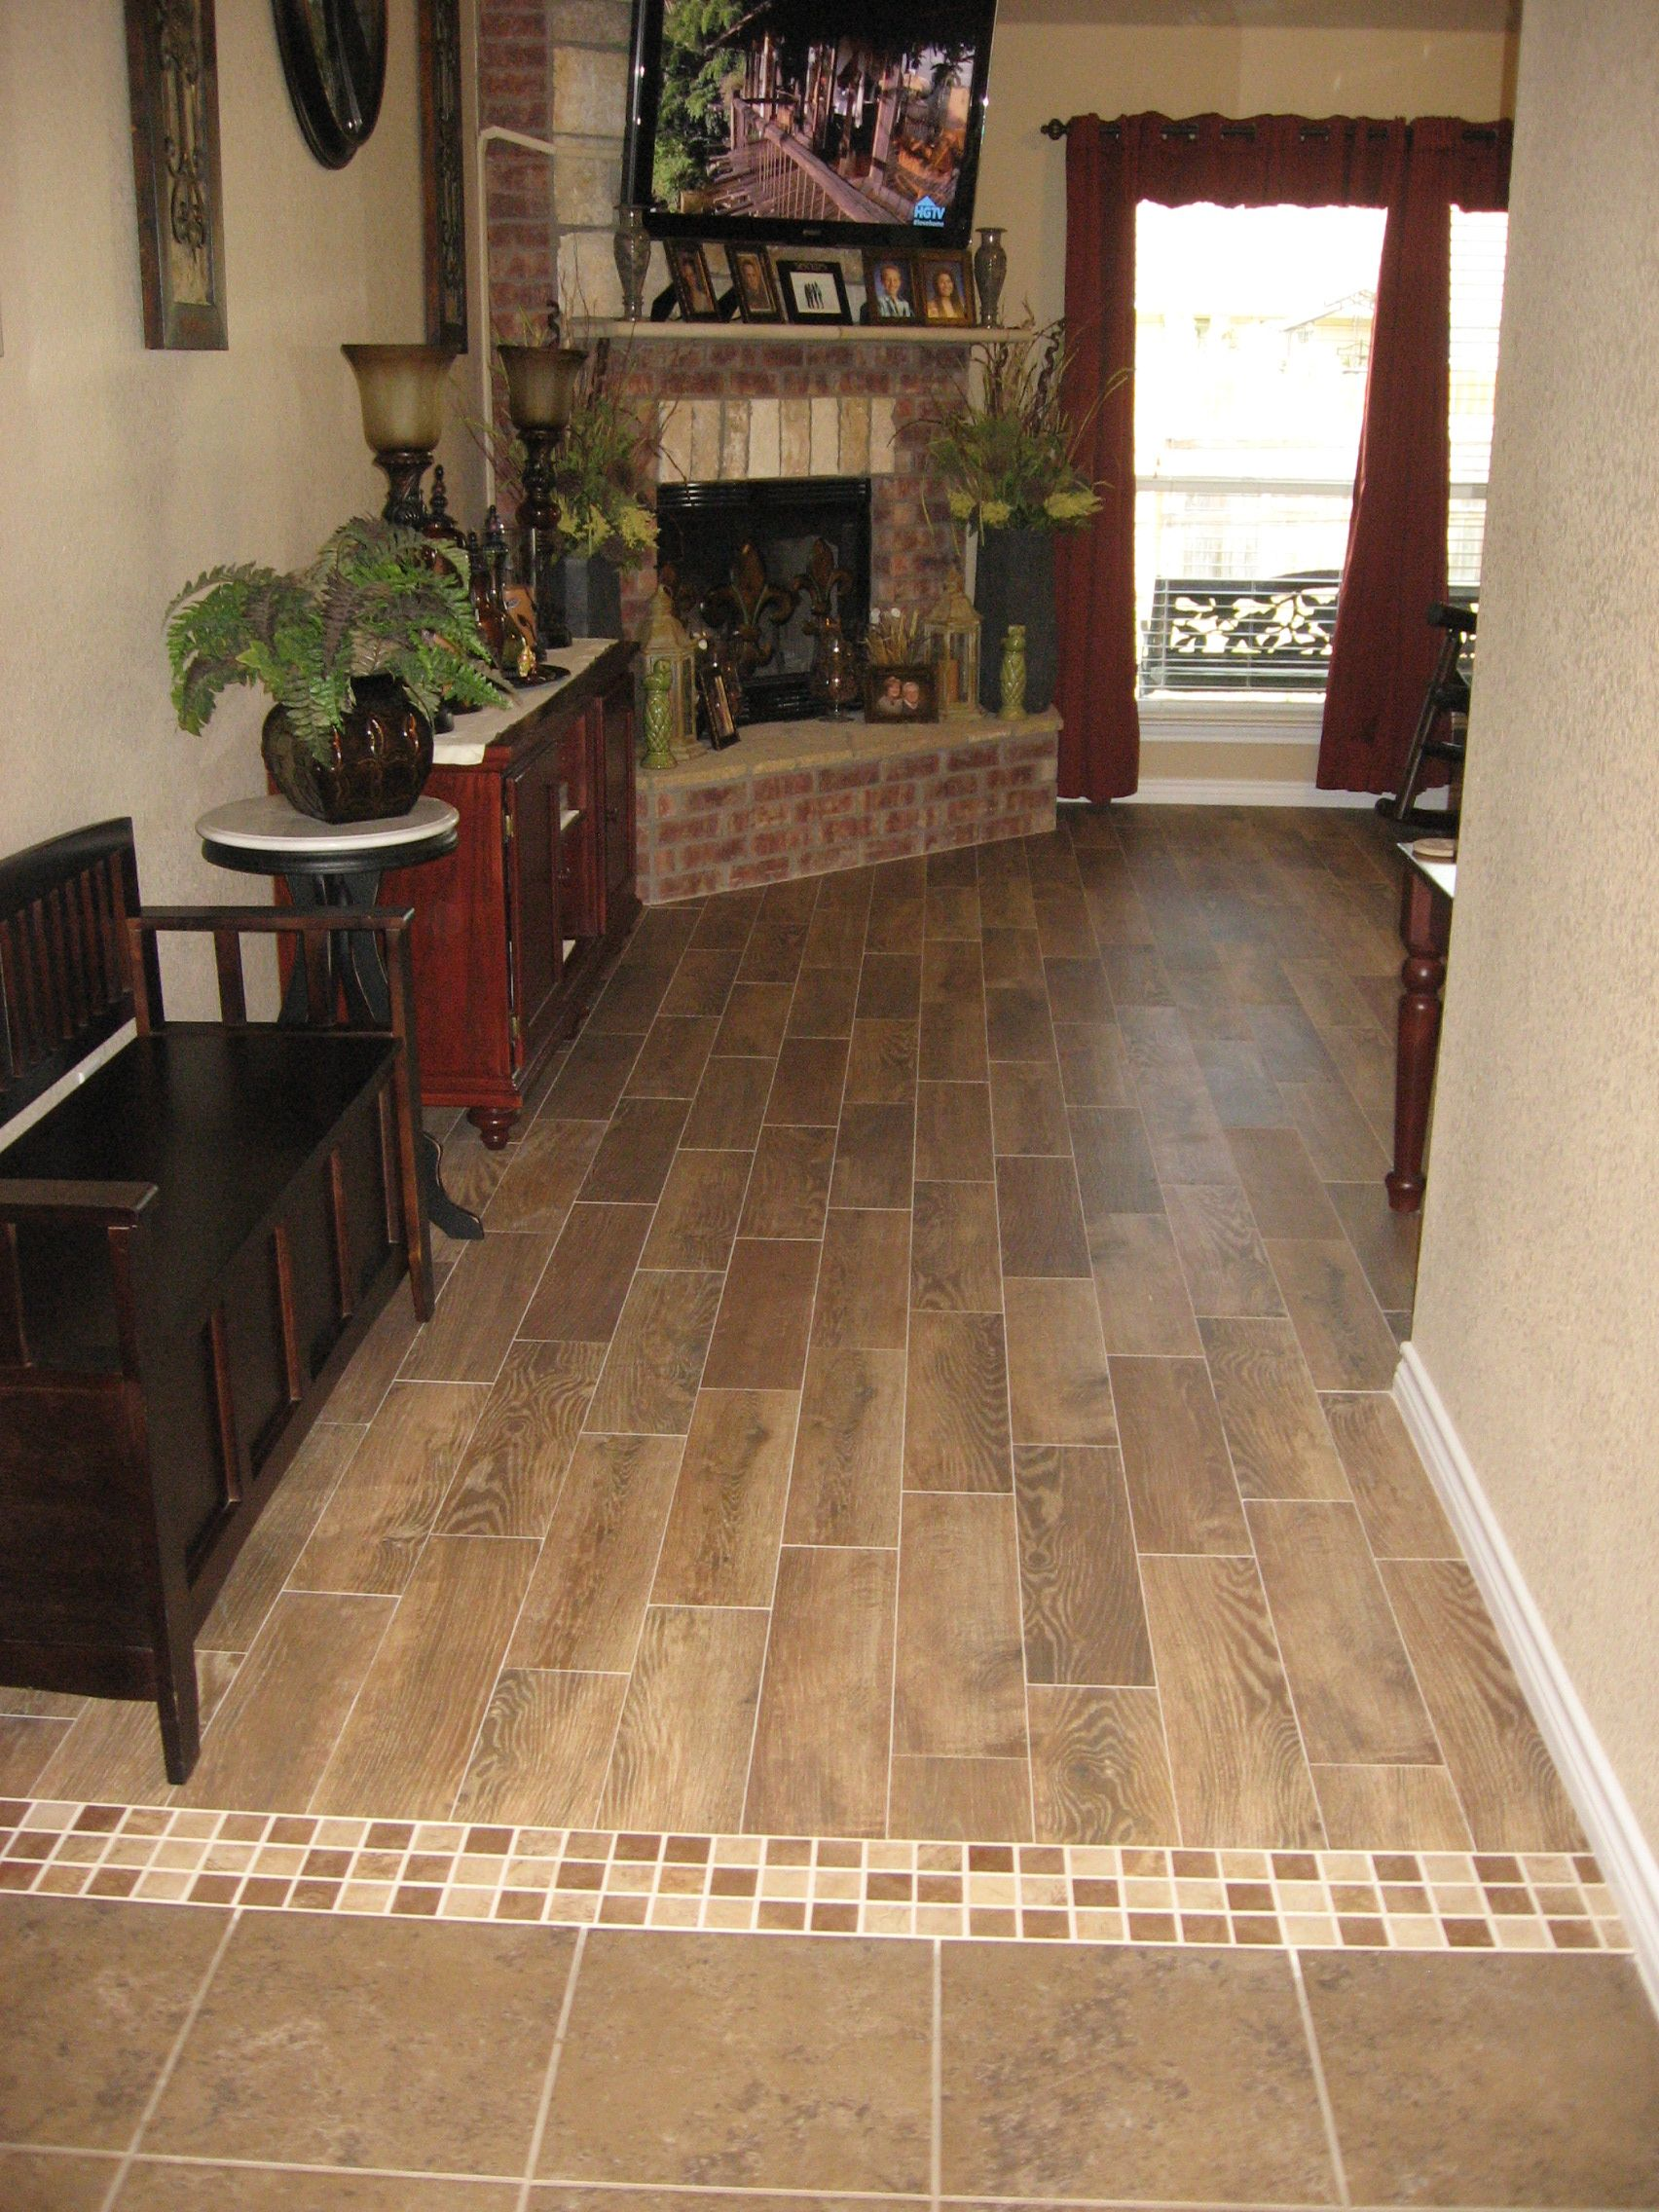 Mosaic Tile Kitchen Floor Transition With Wood Plank Tile Floors Pinterest Mosaics